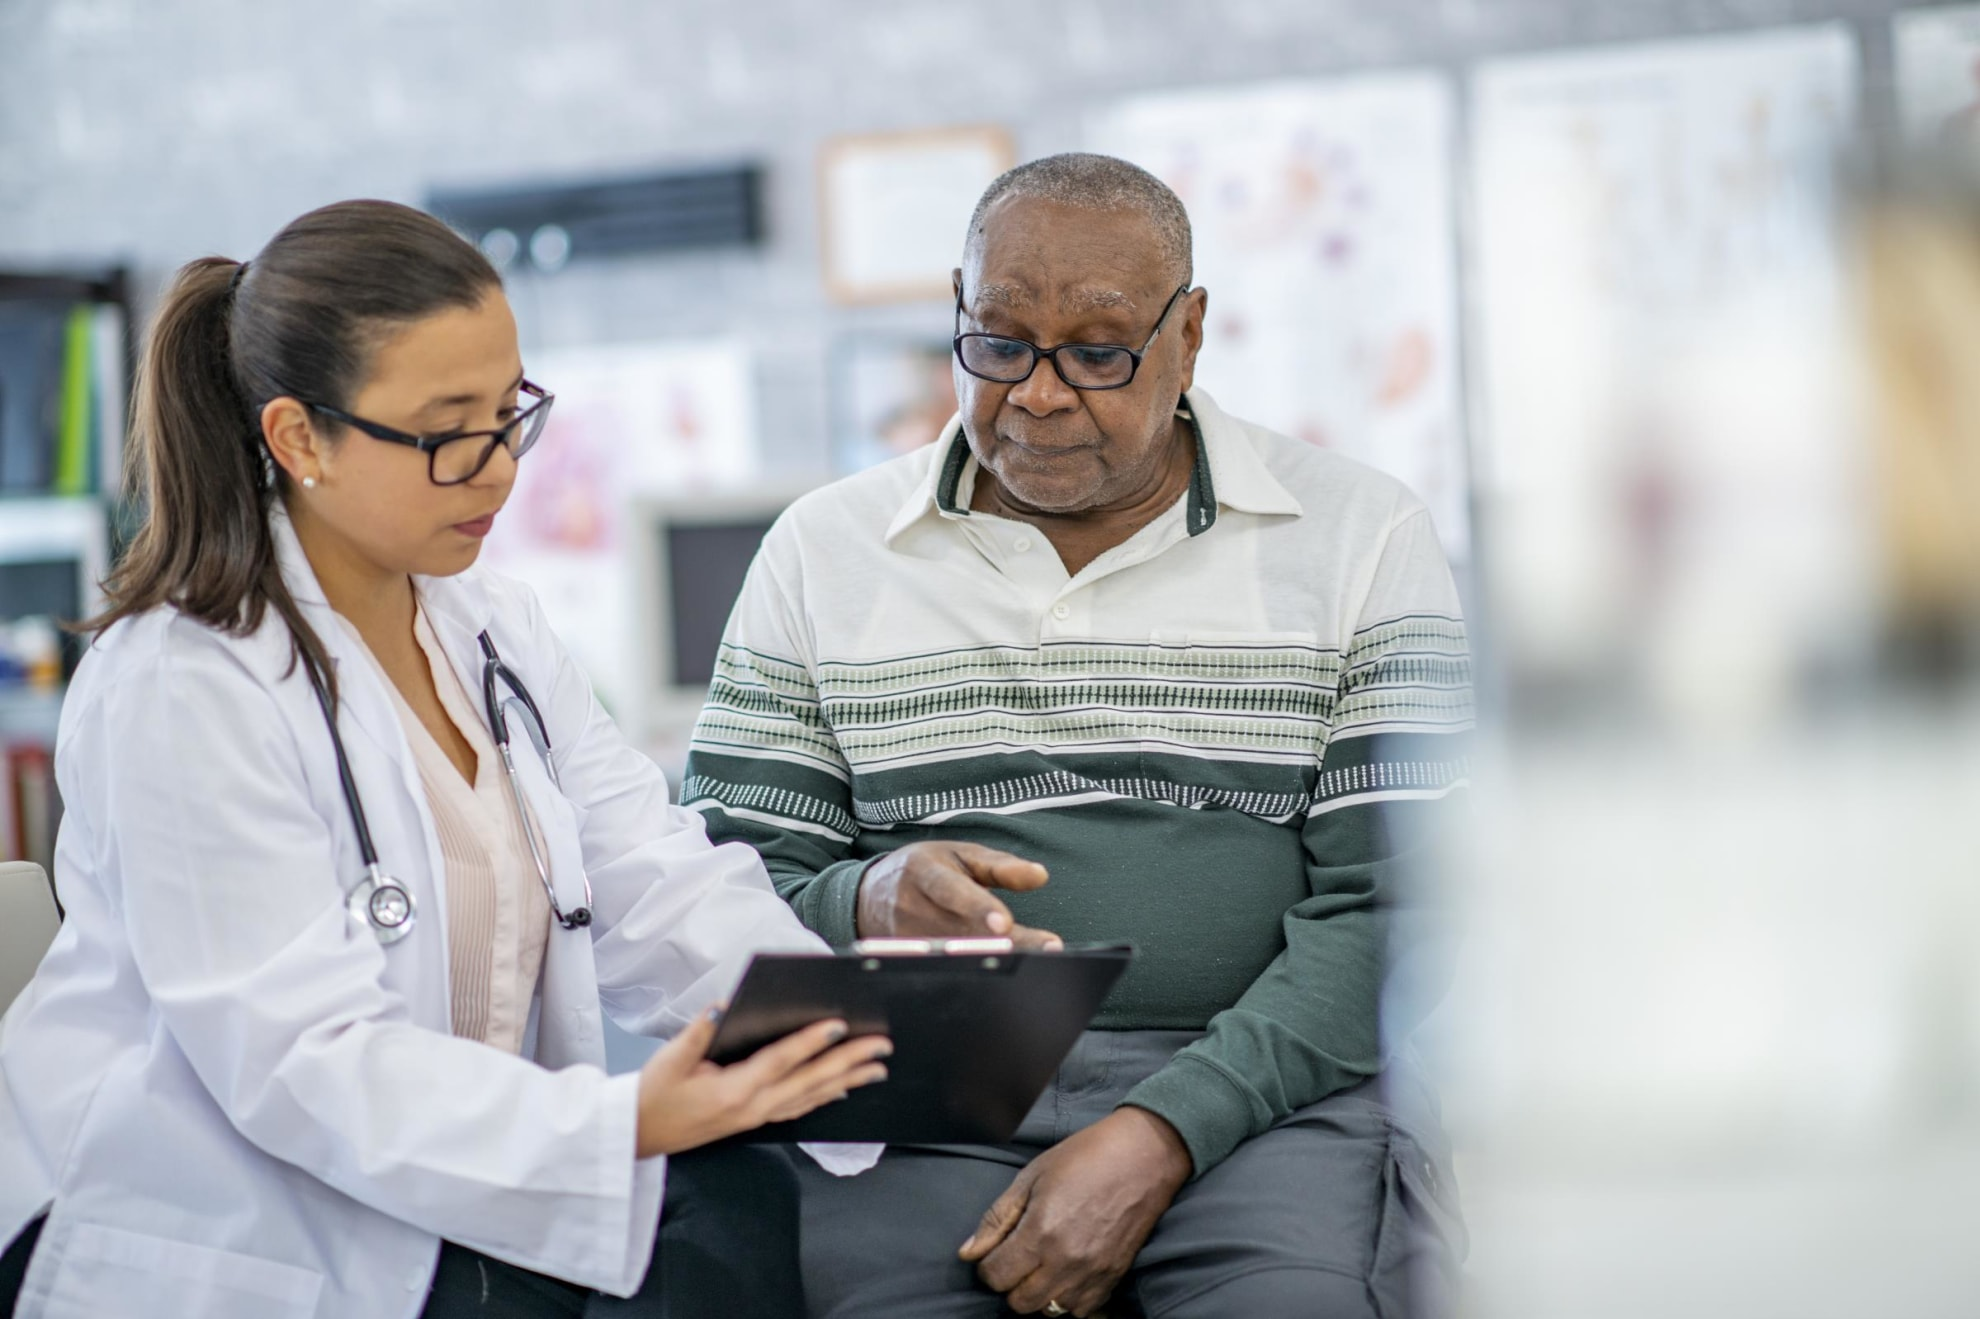 A senior black man is sitting in his doctor's office and listening as the doctor shows him something on her clipboard.